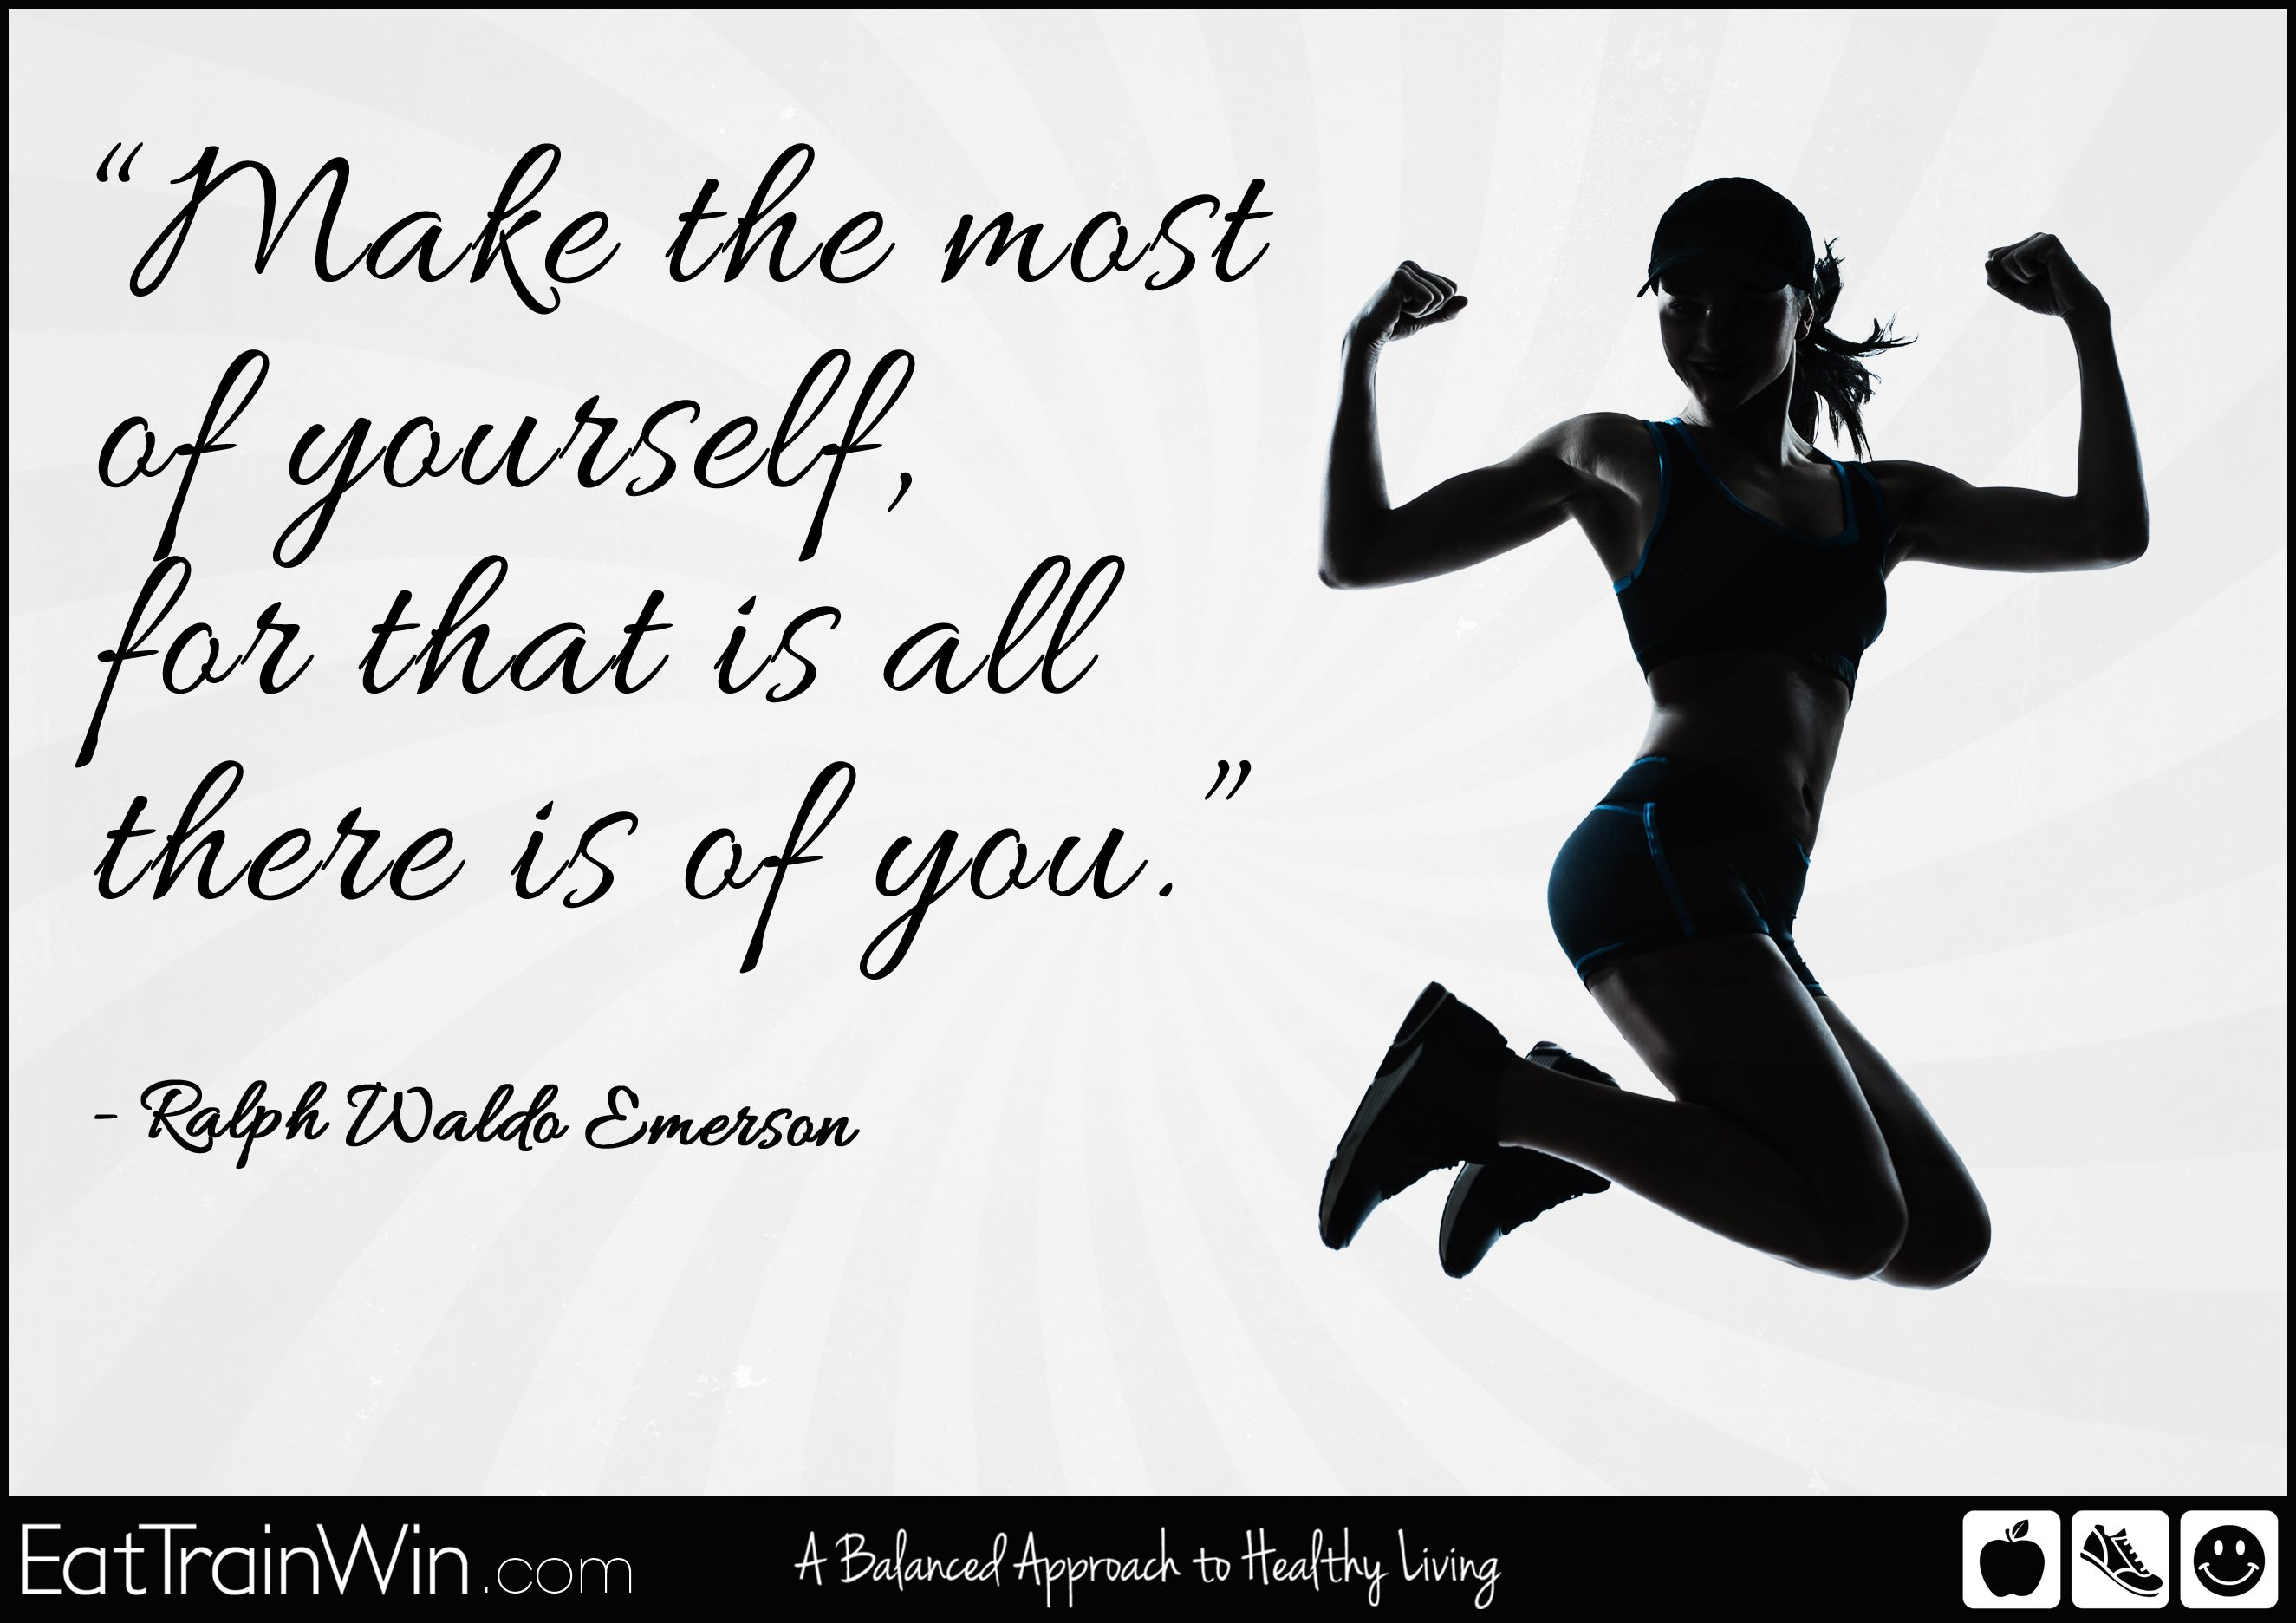 Make the most of yourself, for that is all there is of you...